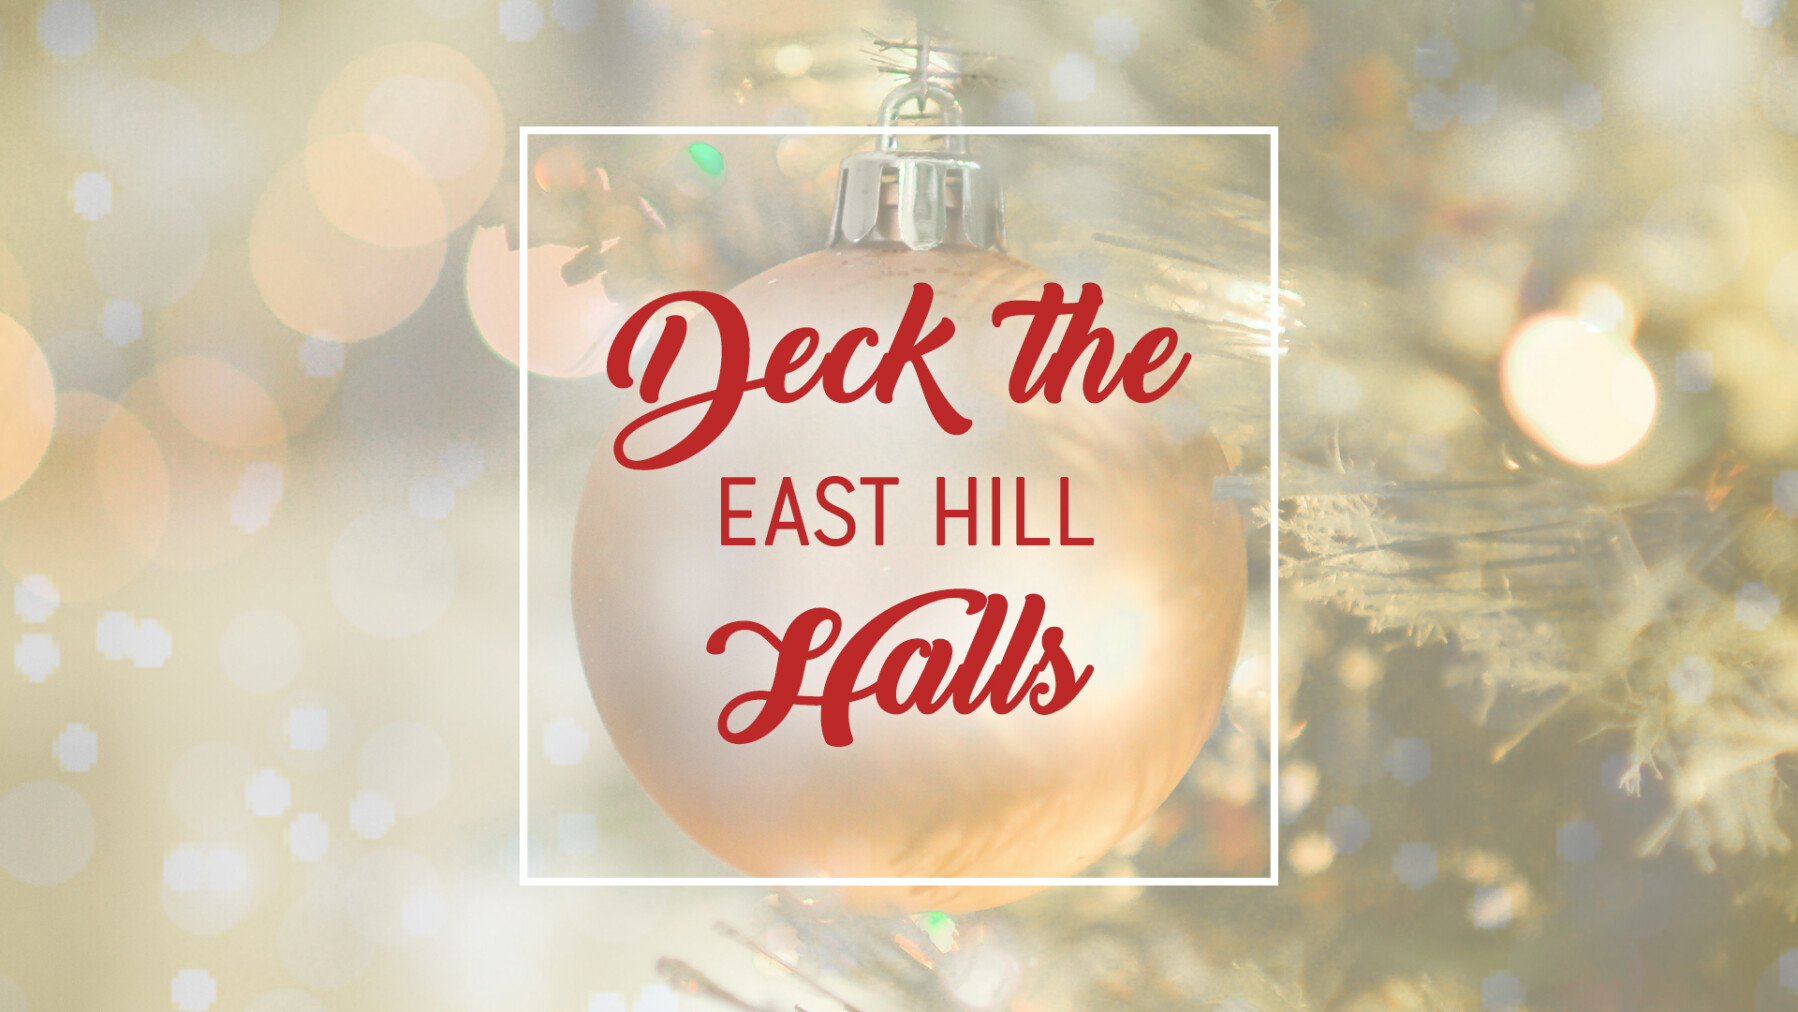 Deck the East Hill Halls